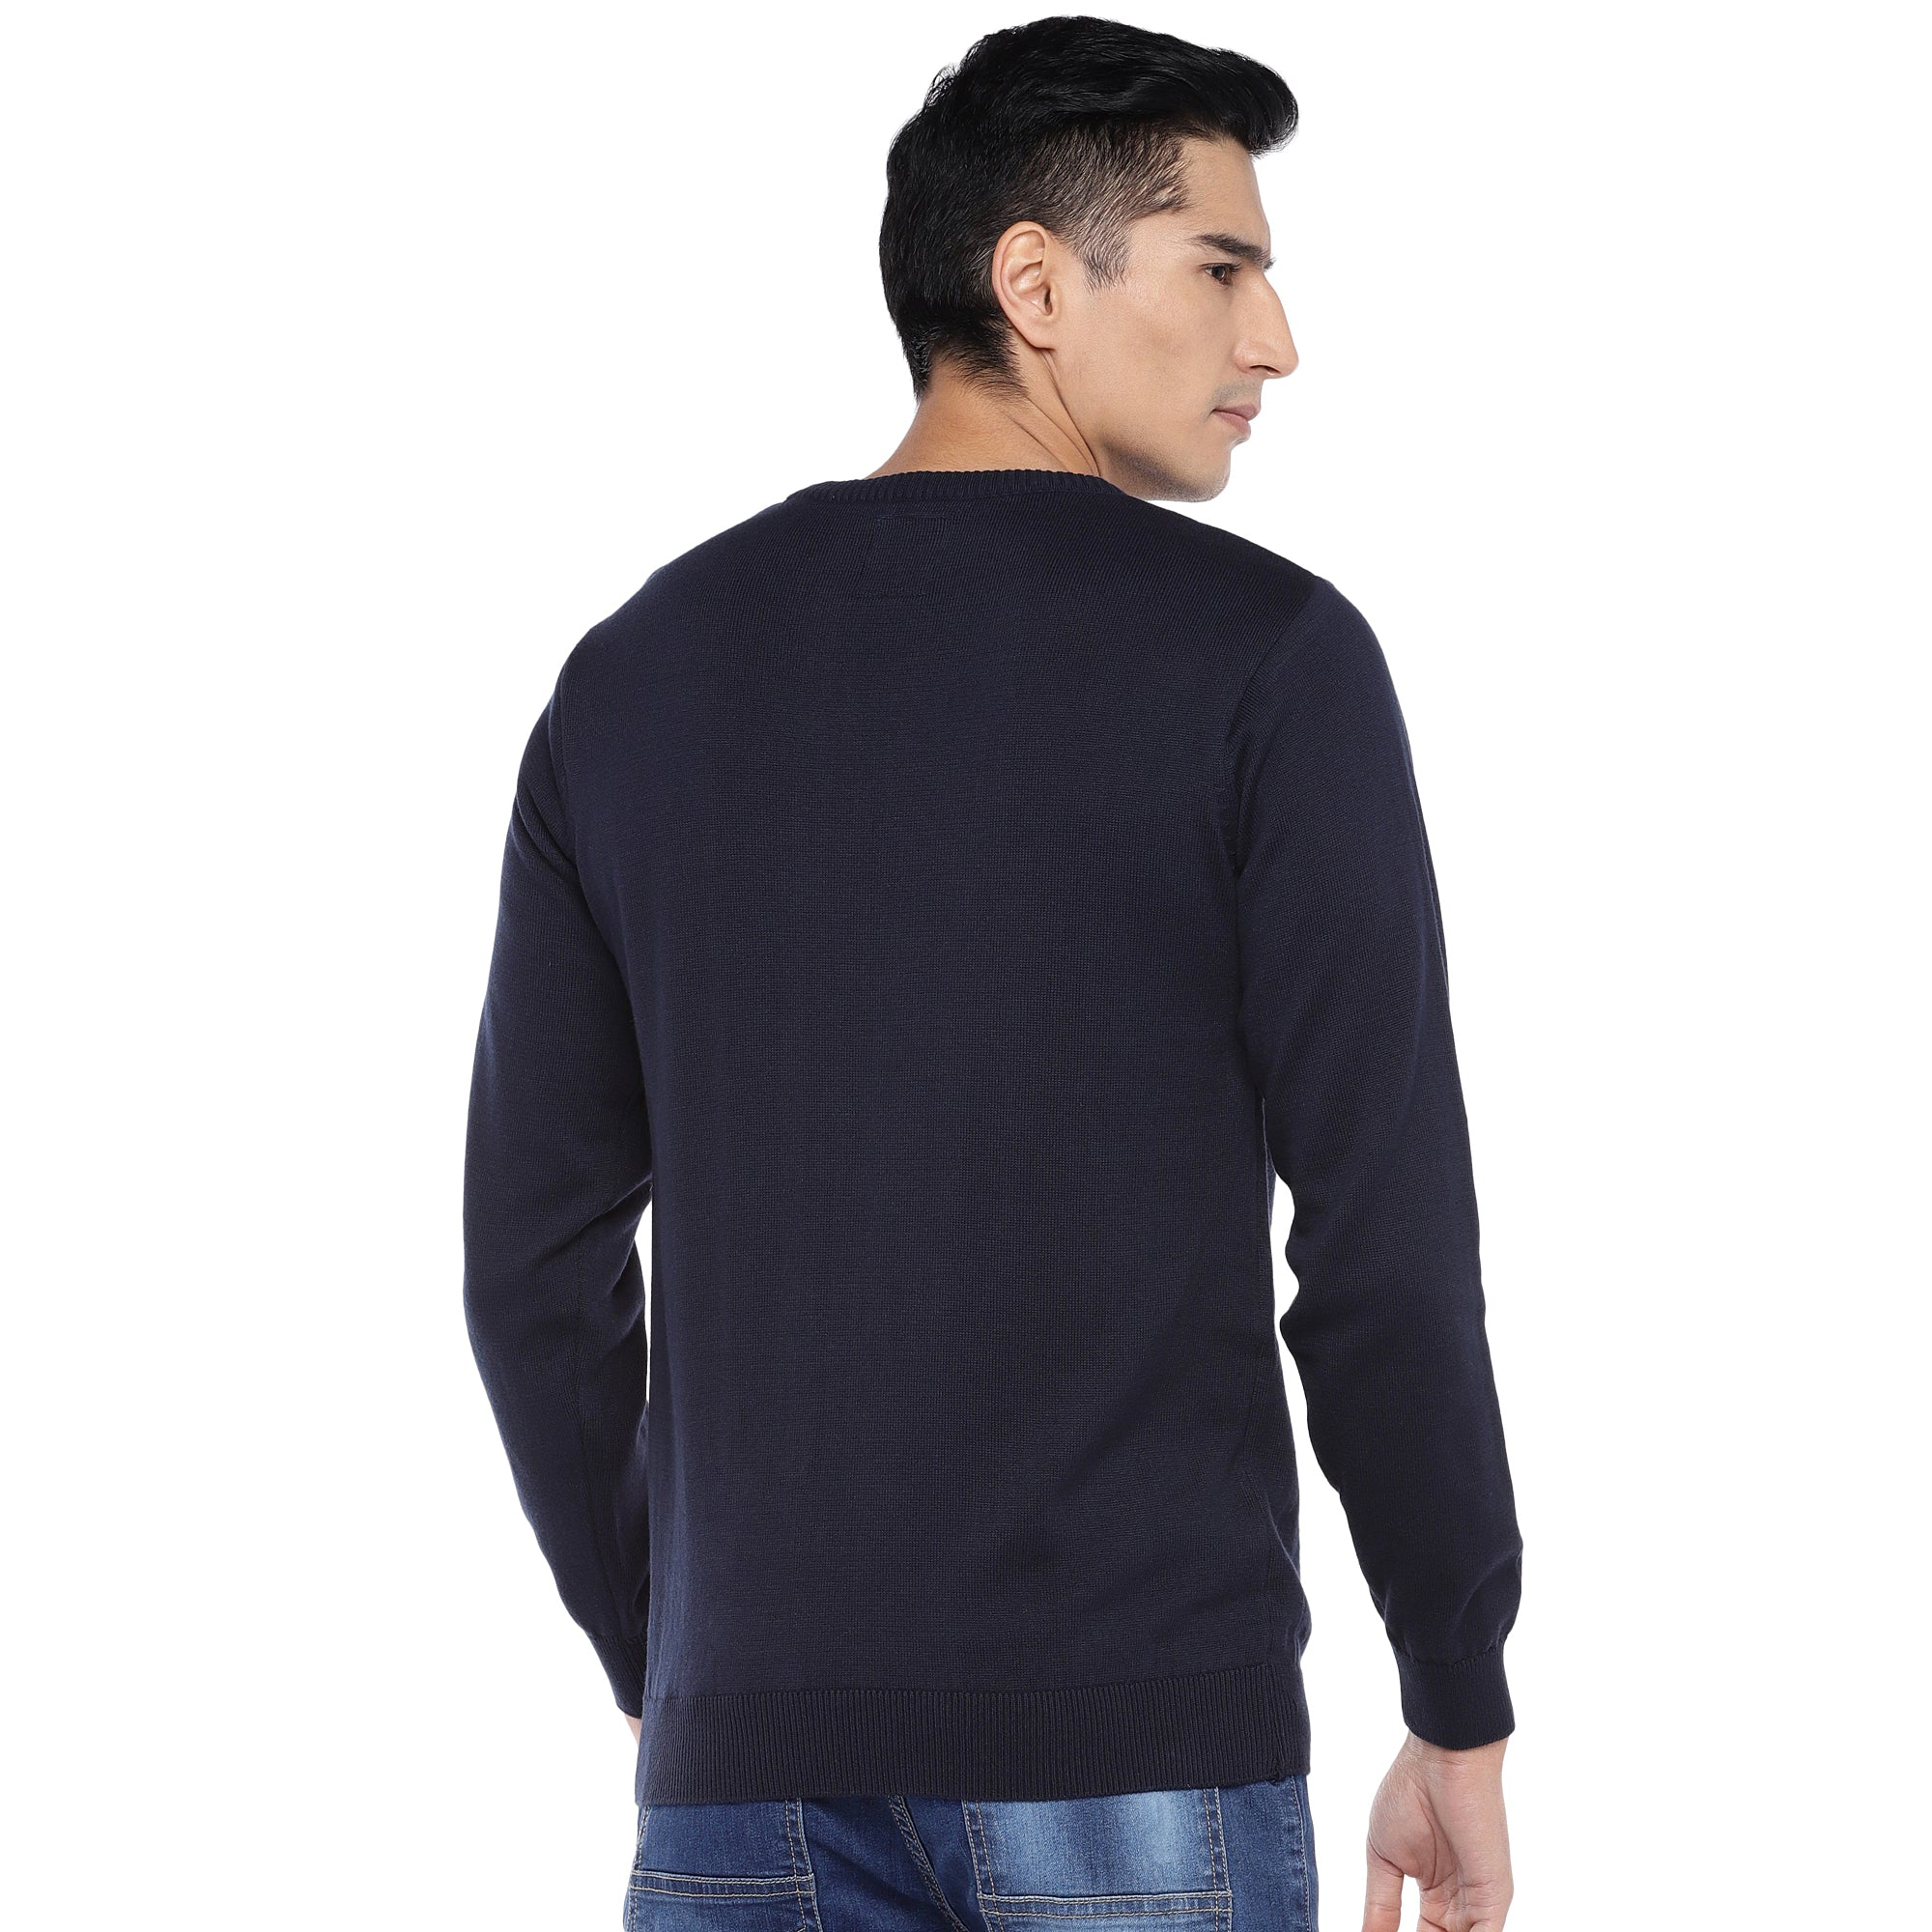 Navy Blue & Red Colourblocked Sweatshirt-3